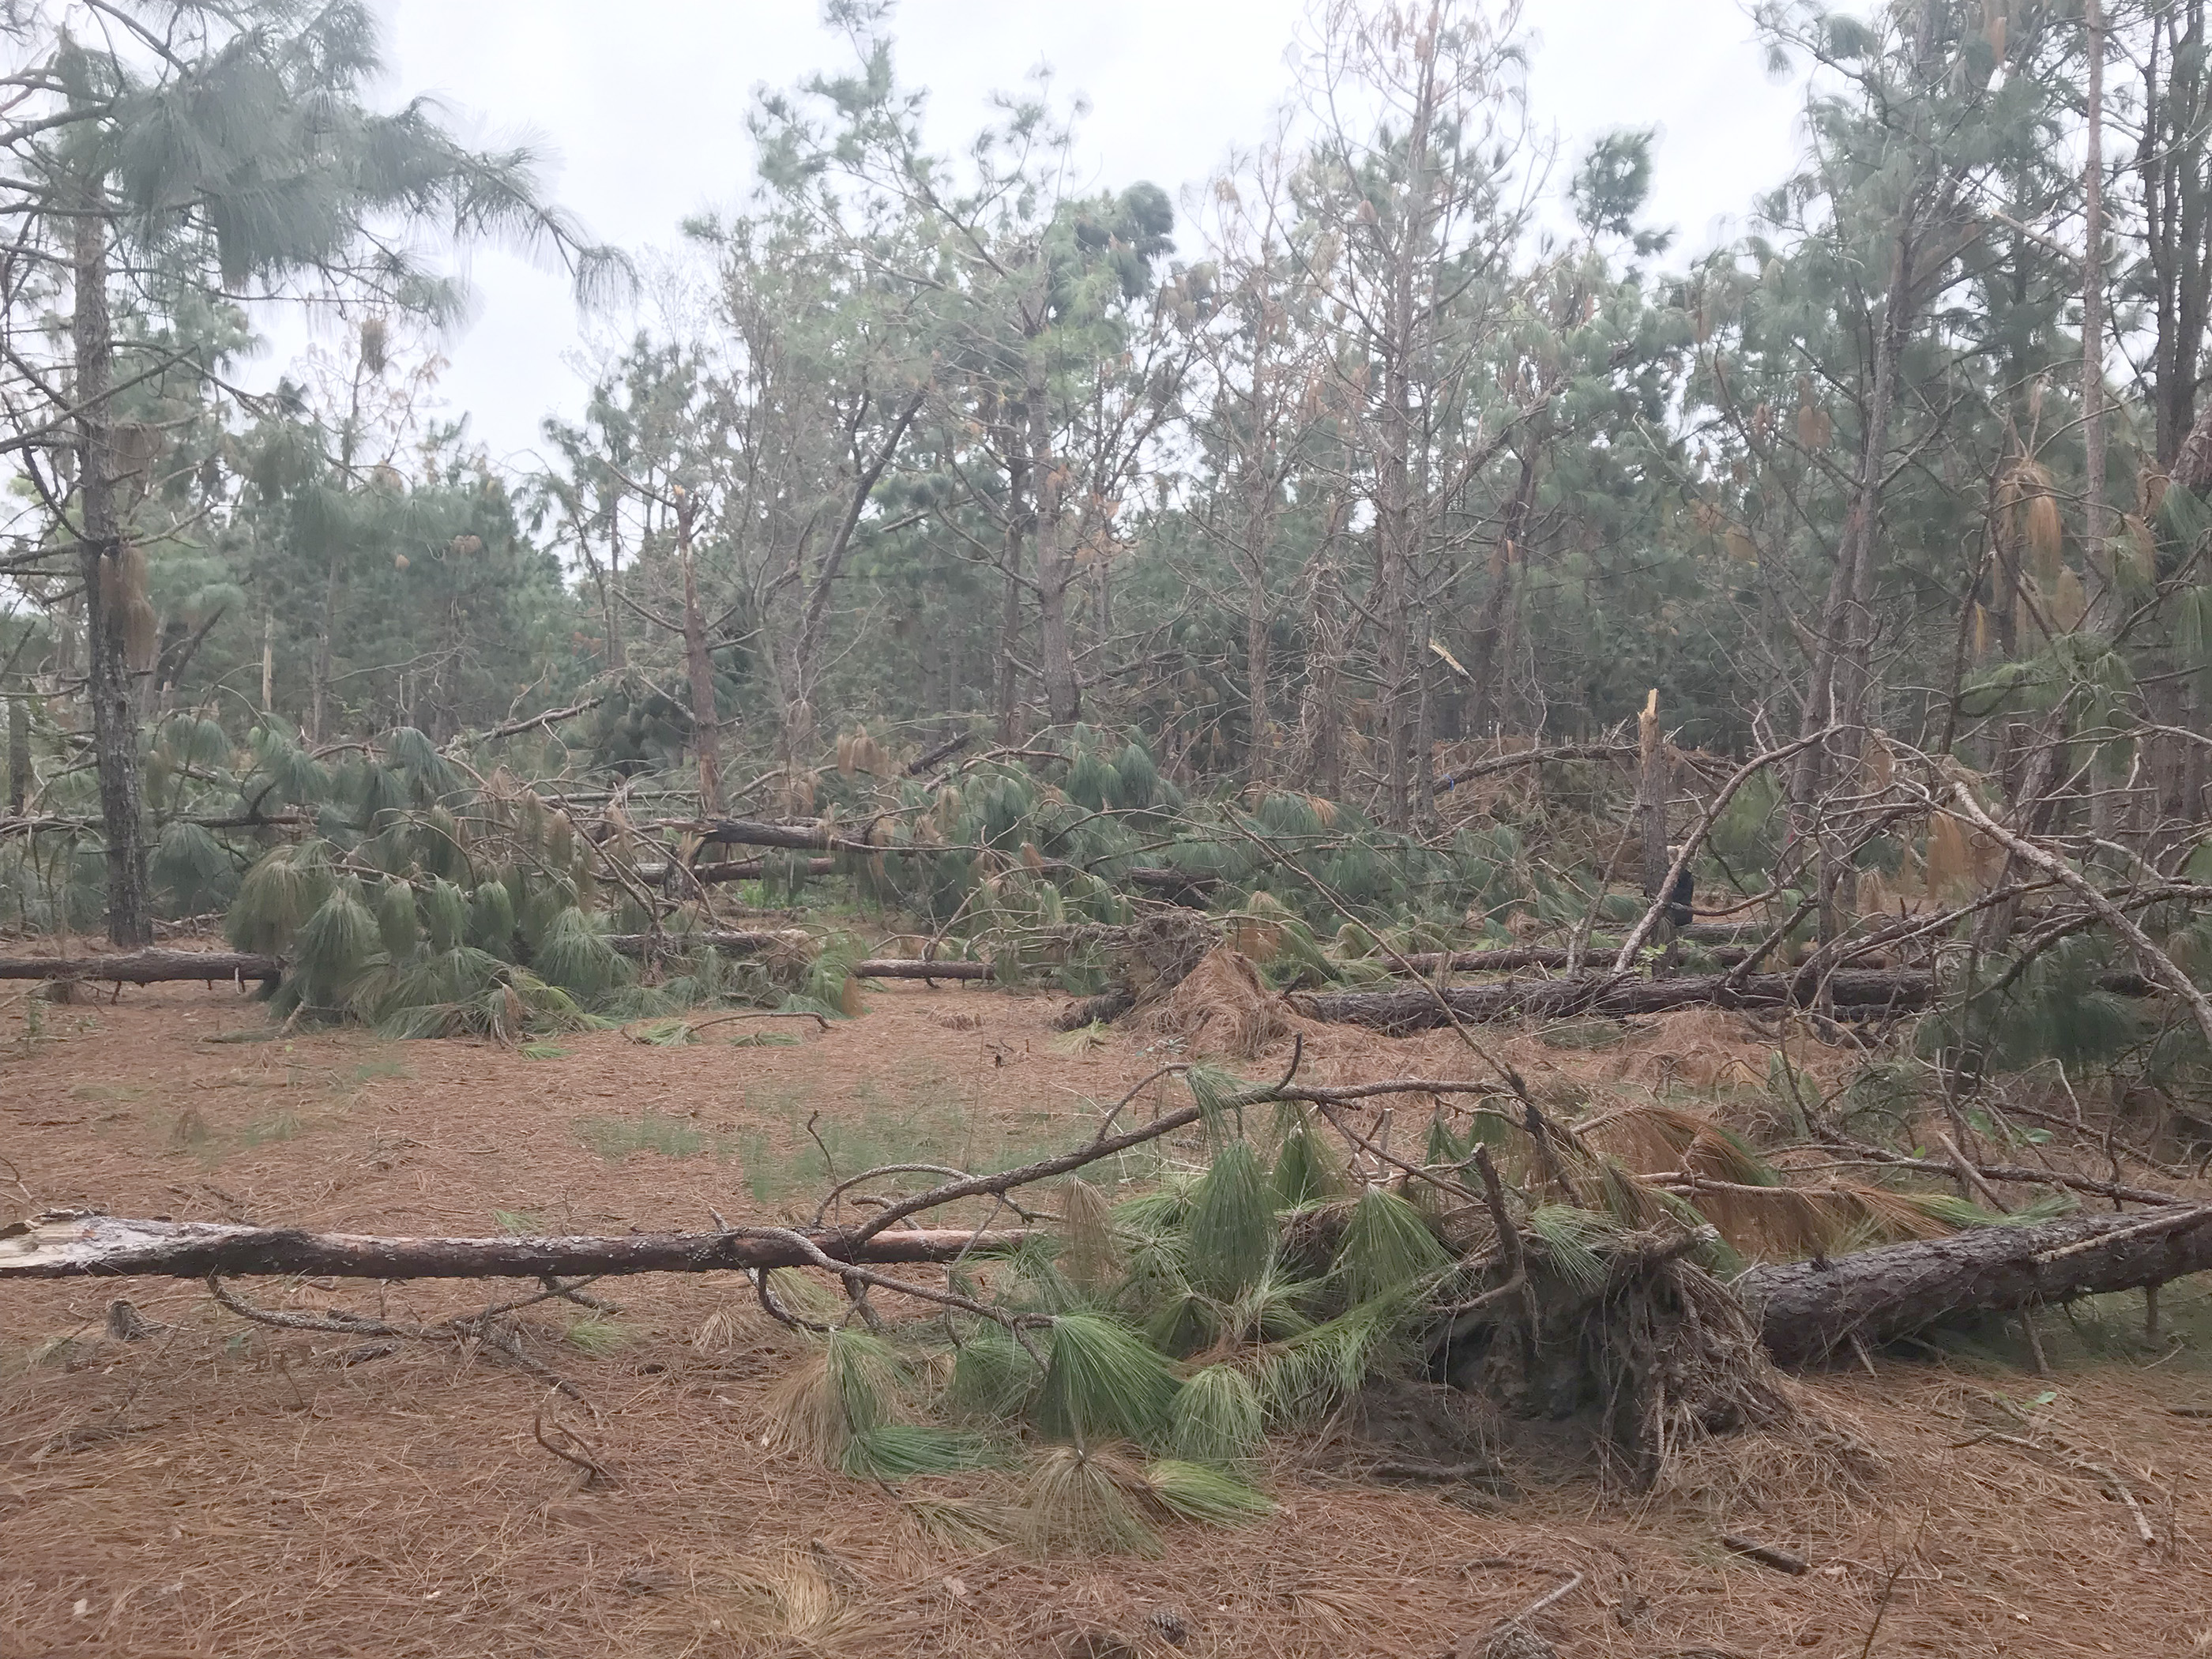 Pine trees toppled over after Hurricane Michael in Wilcox County, Georgia.